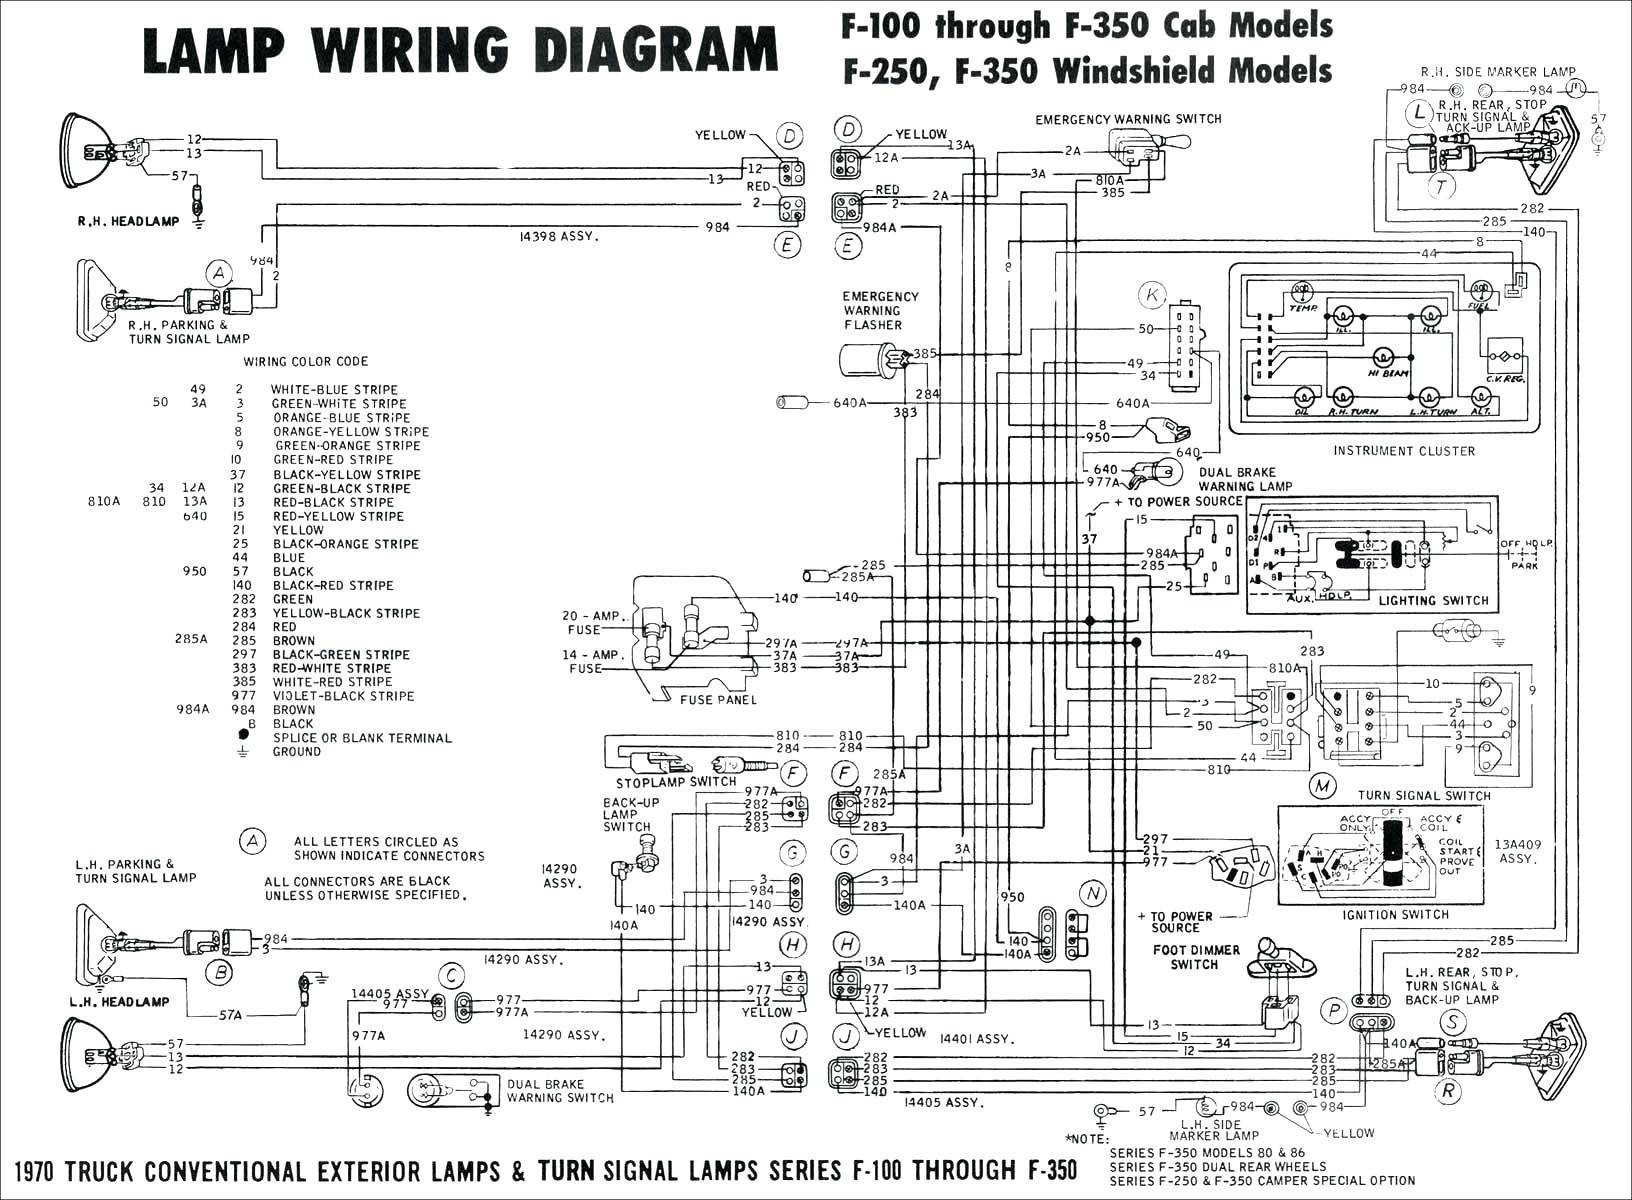 Audi A2 Engine Diagram the Wiring Diagram for the Symphony Ii is Shown as You Can